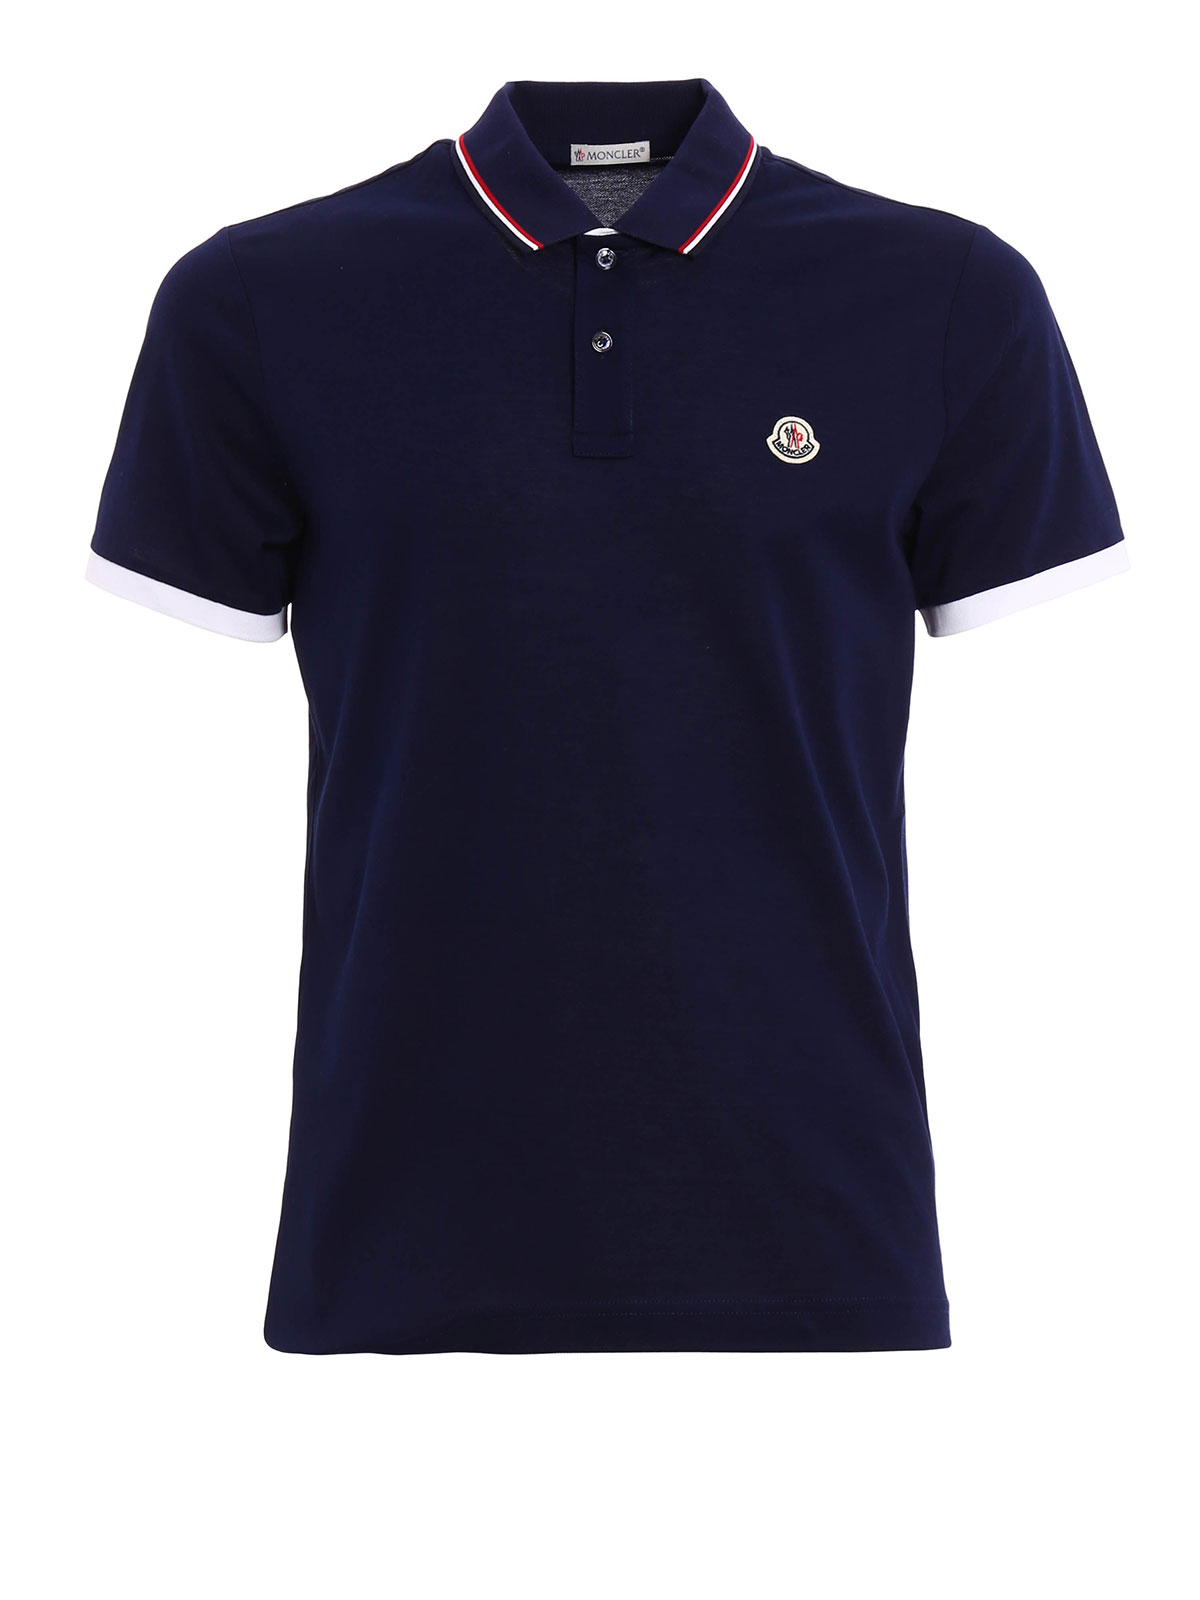 moncler cotton pique polo shirt polo shirts 8317500 84673 783. Black Bedroom Furniture Sets. Home Design Ideas